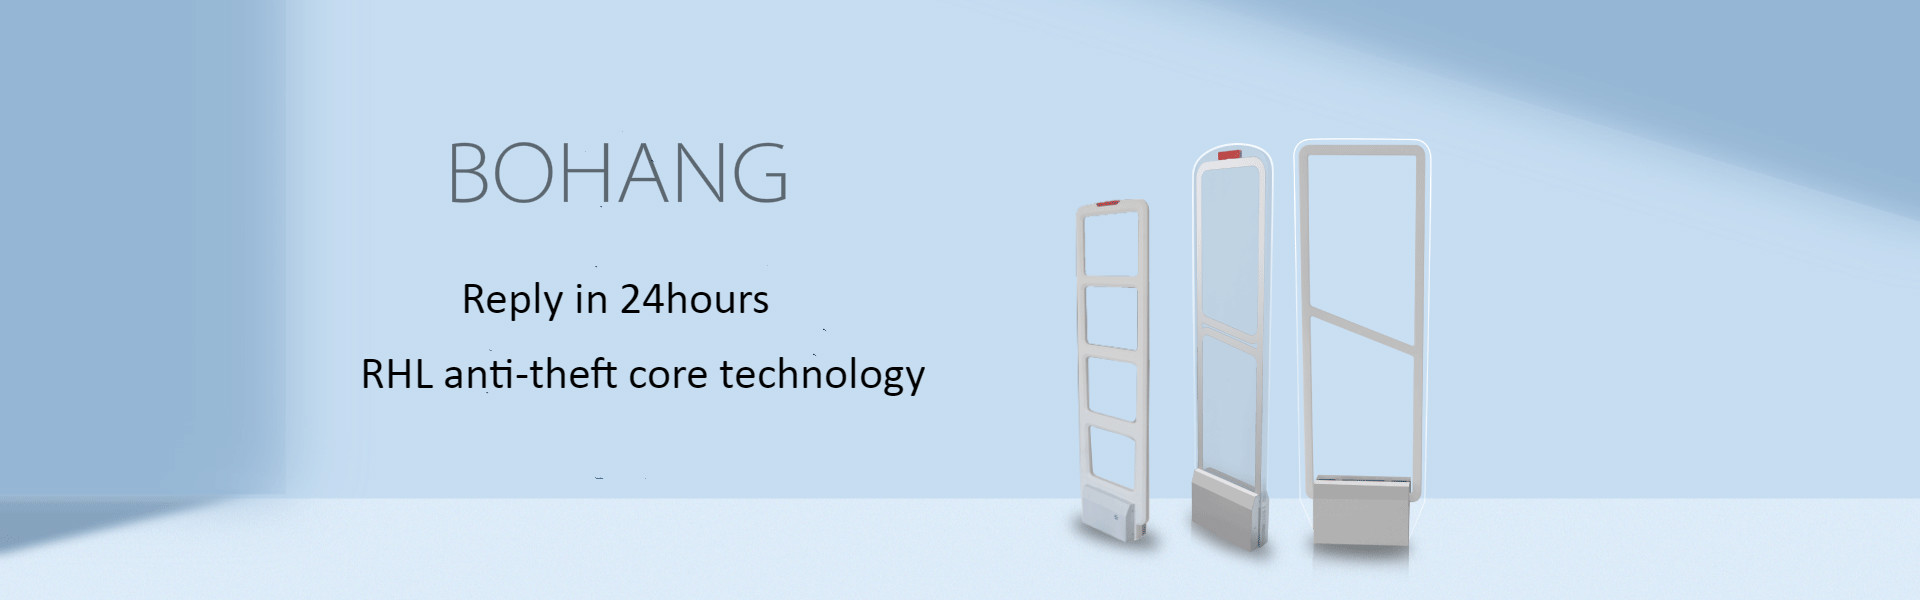 bohang anti-theft alarm security system